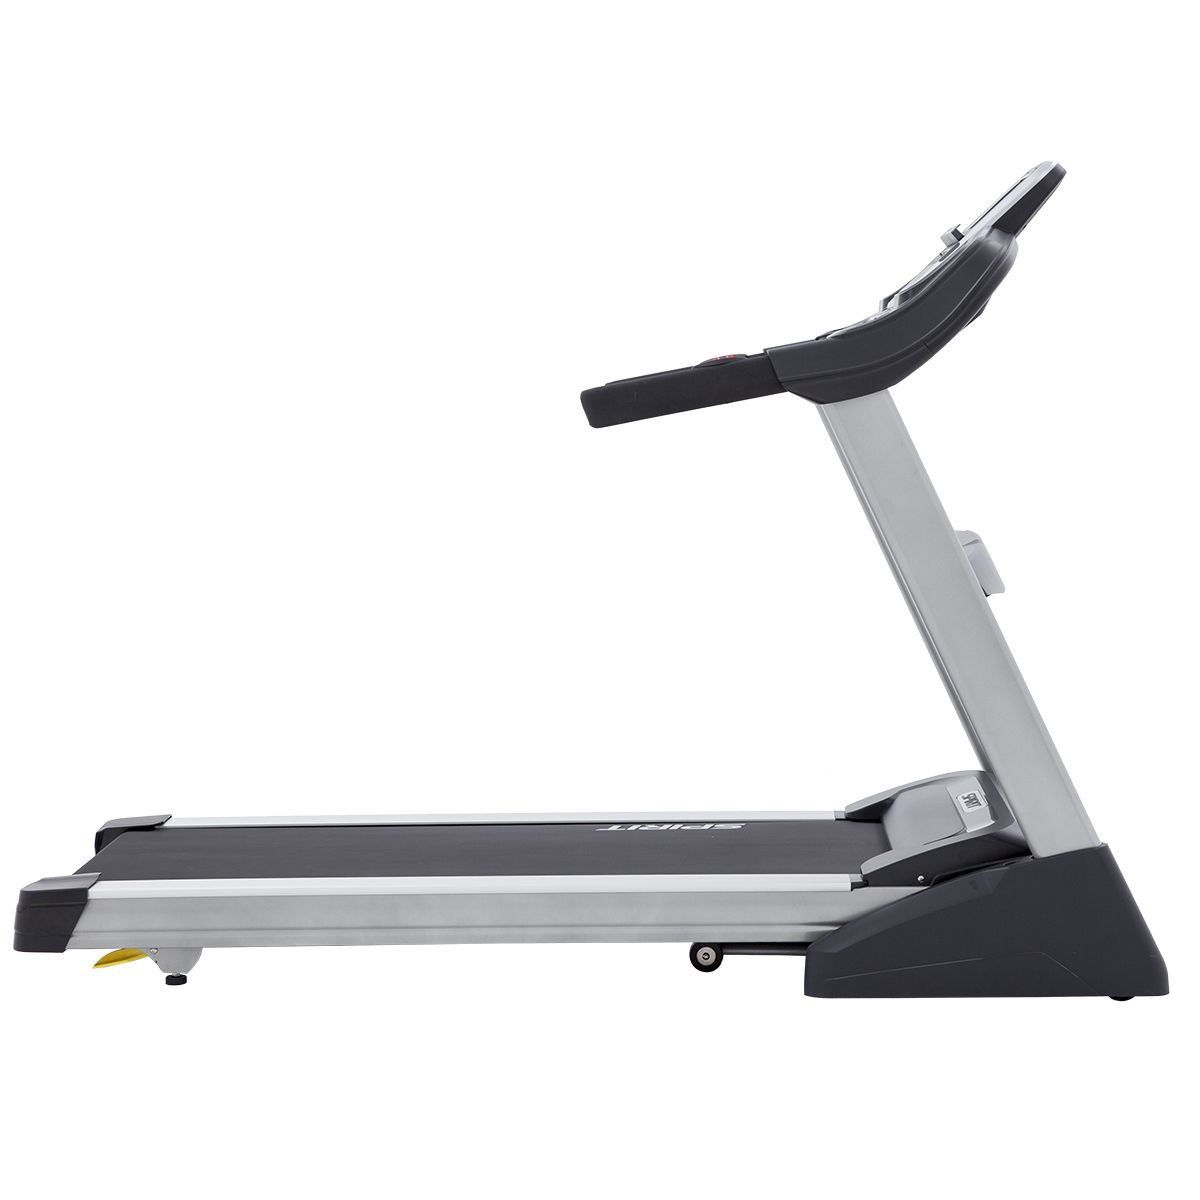 Side view of the Spirit Fitness XT485 treadmill